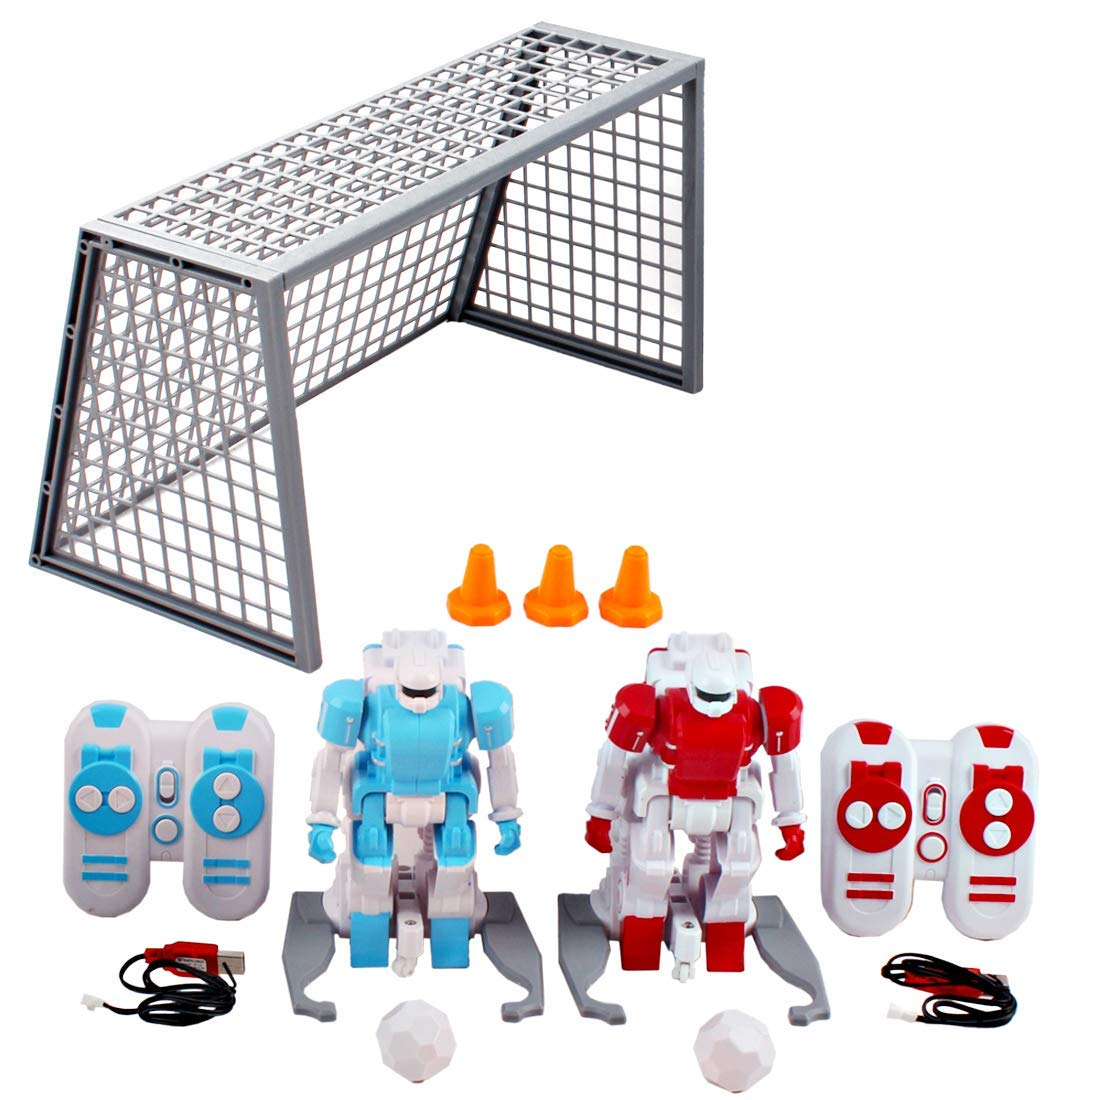 Soccer Balls and Accessories Included deAO 2.4GHz Kids Interactive Remote Control Robot Football Player Set with Goal Posts